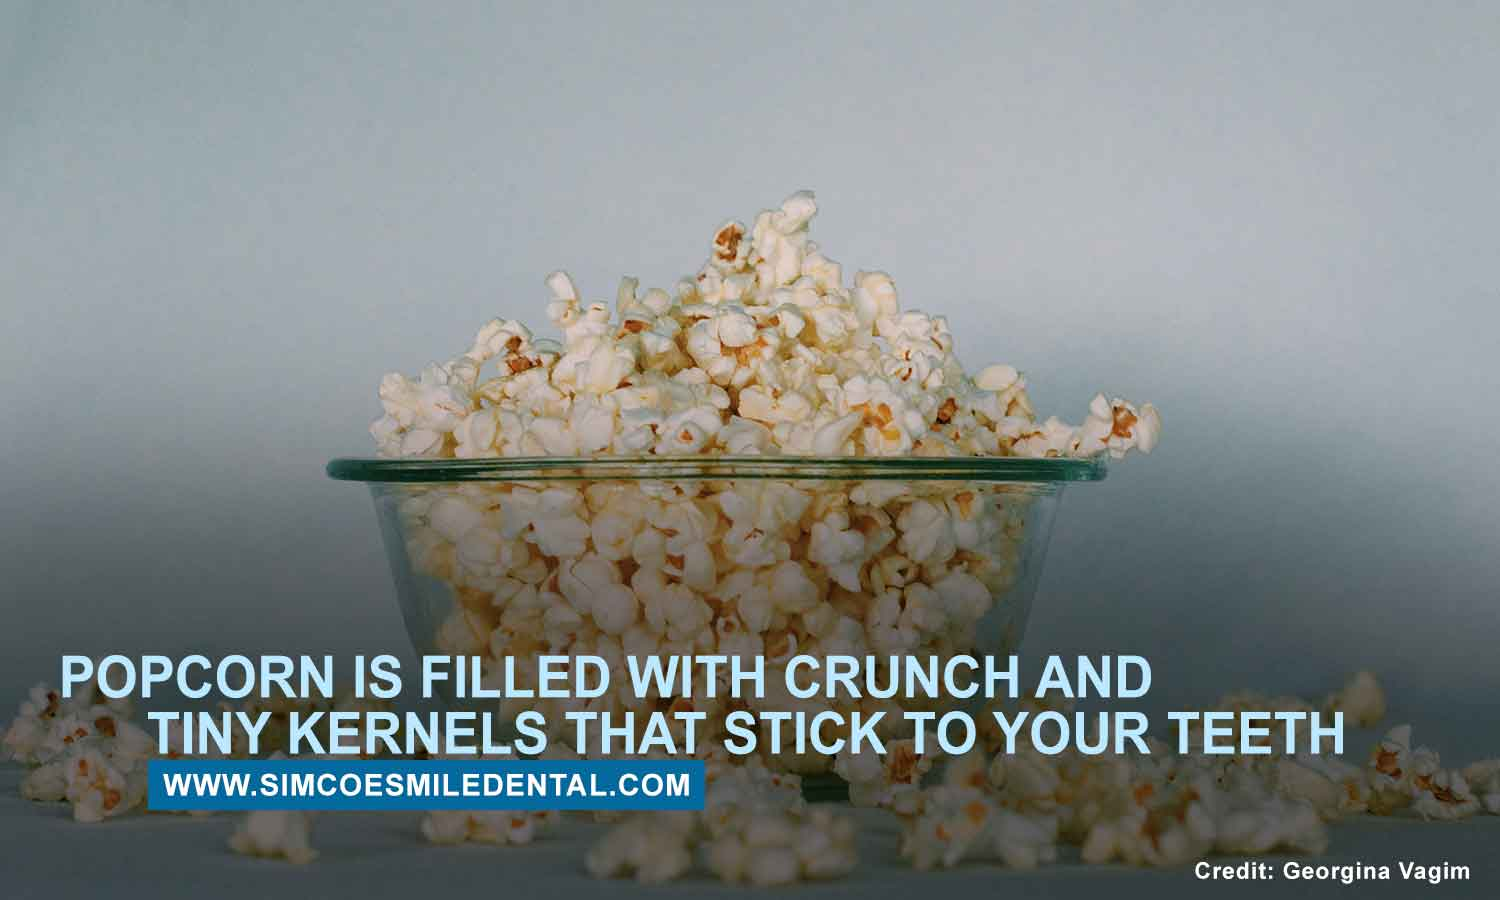 Popcorn-is-filled-with-crunch-and-tiny-kernels-that-stick-to-your-teeth Food And Your Oral Health